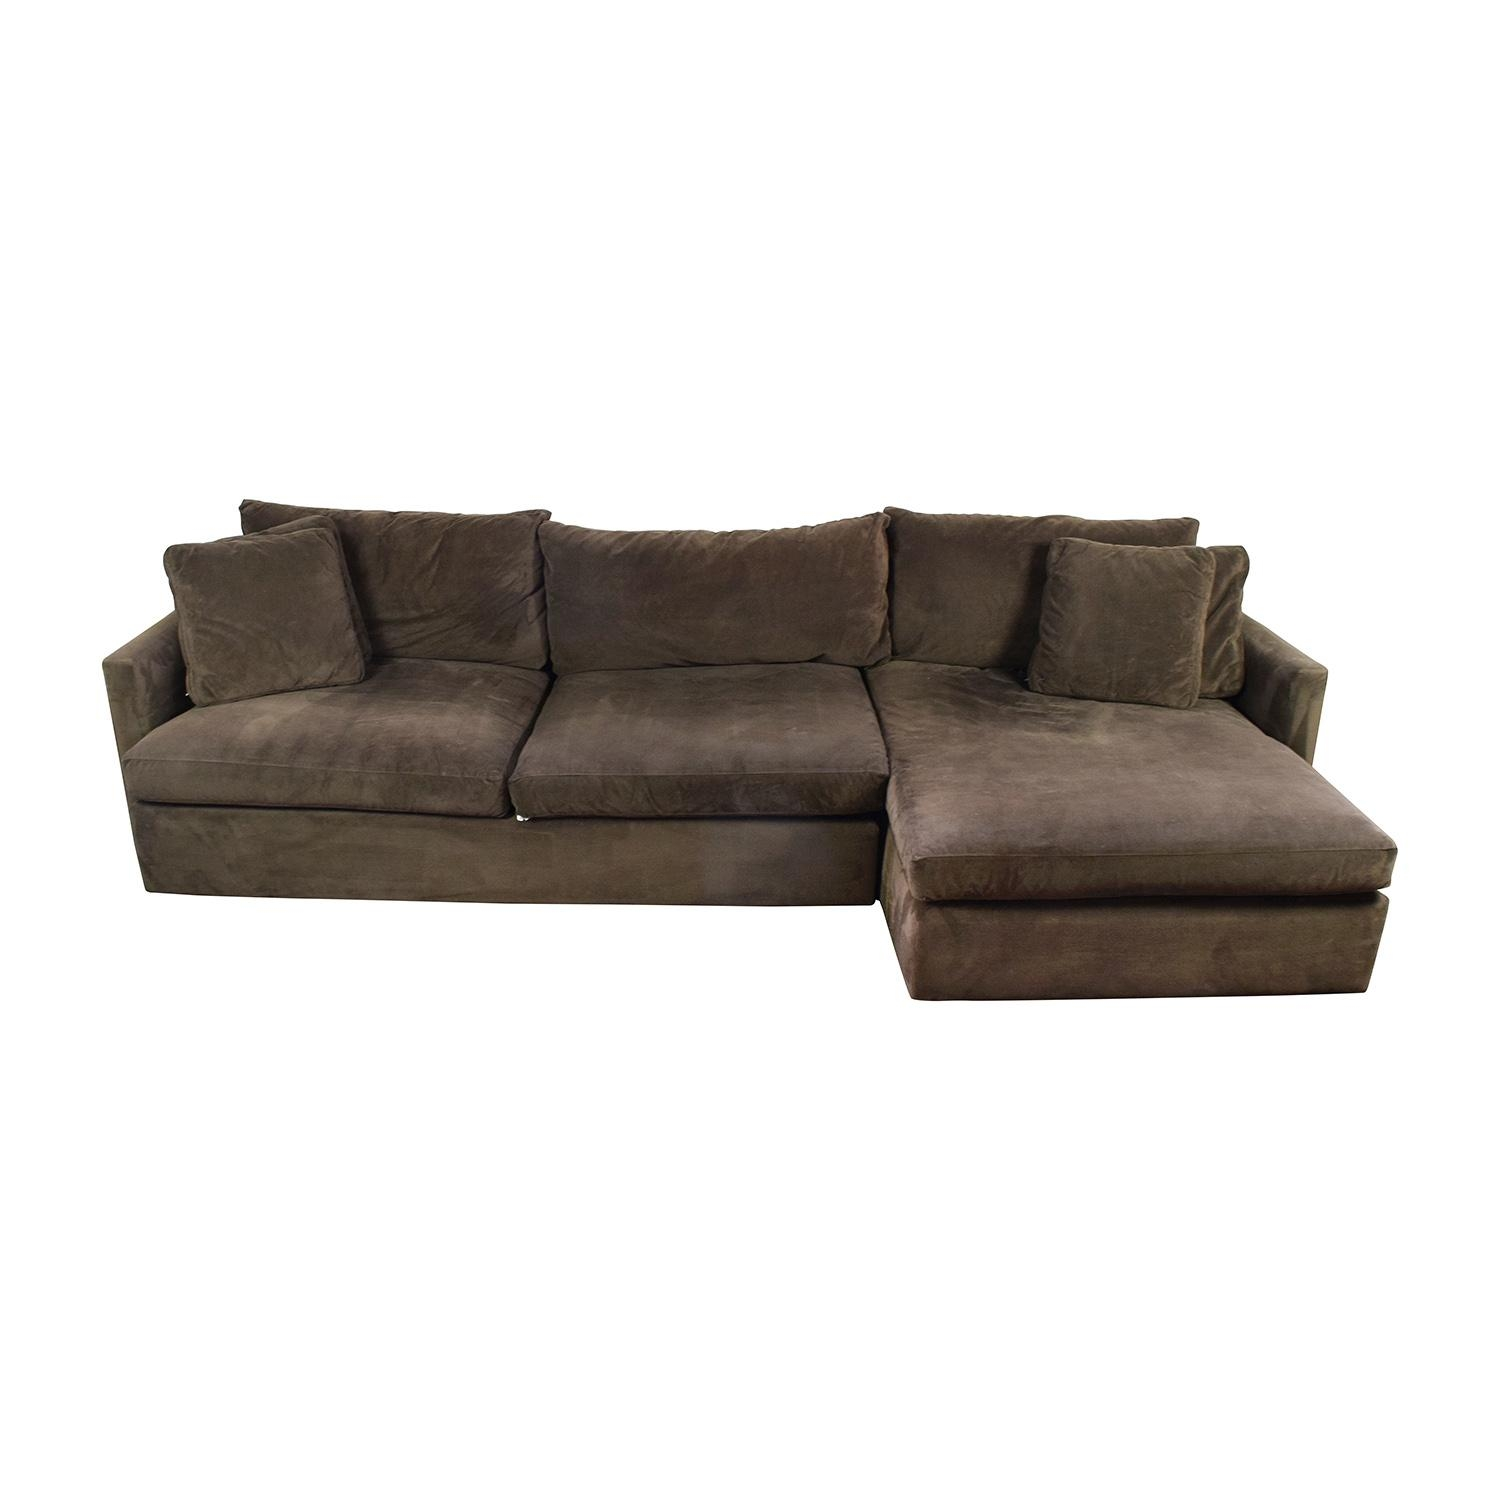 89% Off - Crate And Barrel Crate & Barrel Brown Left Arm Sectional with regard to Crate And Barrel Sectional